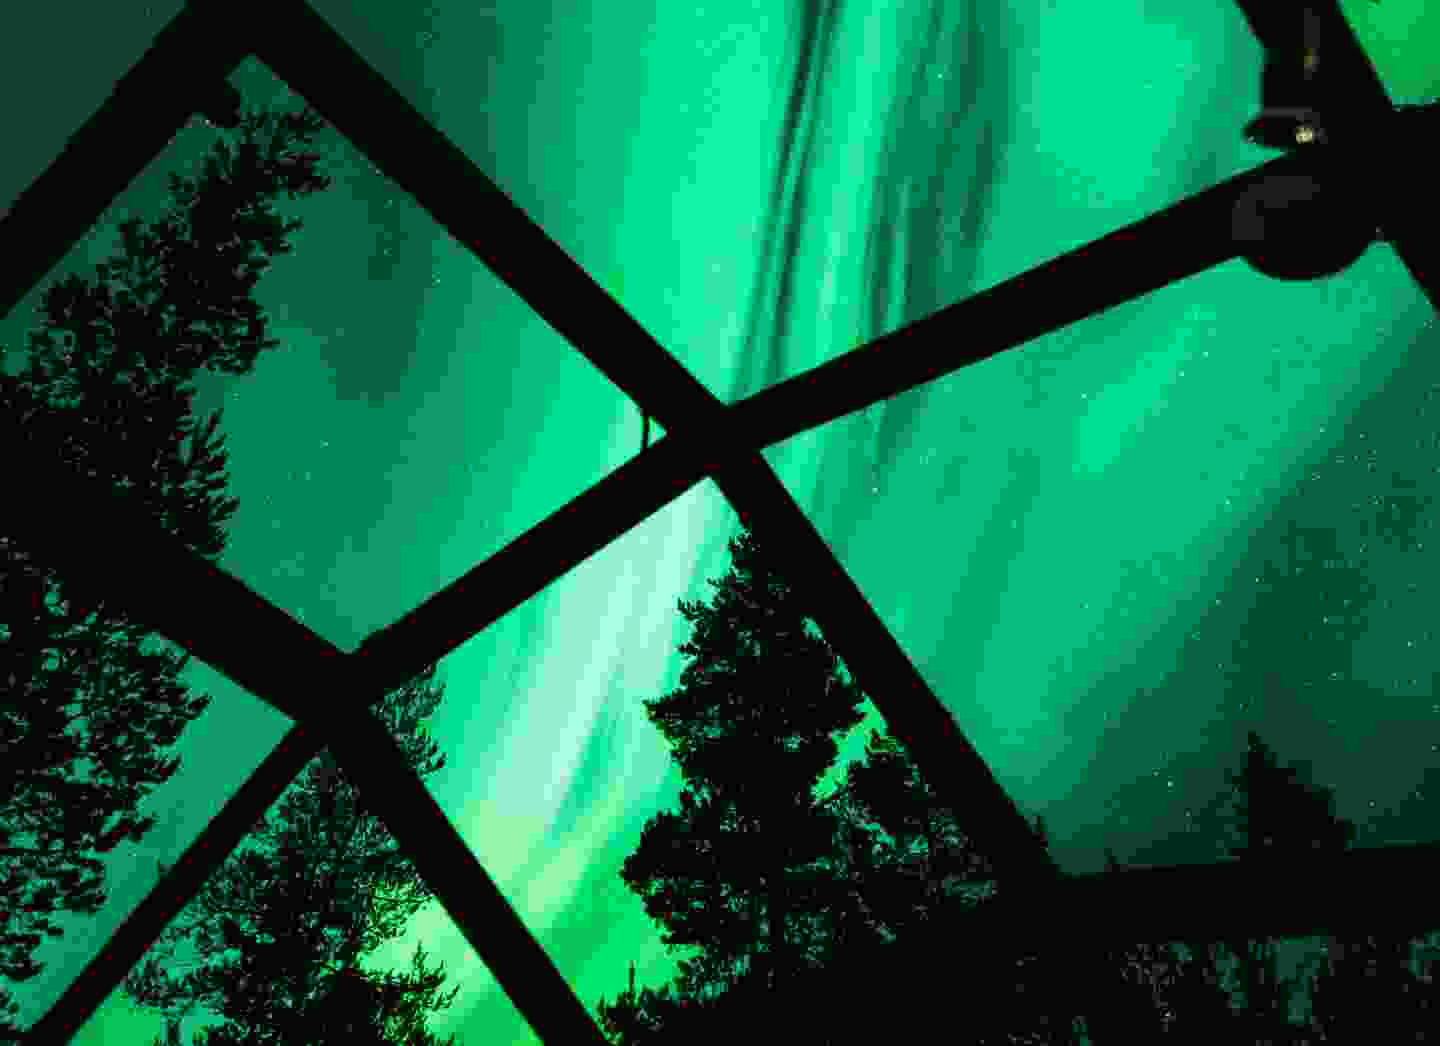 Aurora borealis from inside a glass igloo at Hotel Kakslauttanen, Finland (Dreamstime)